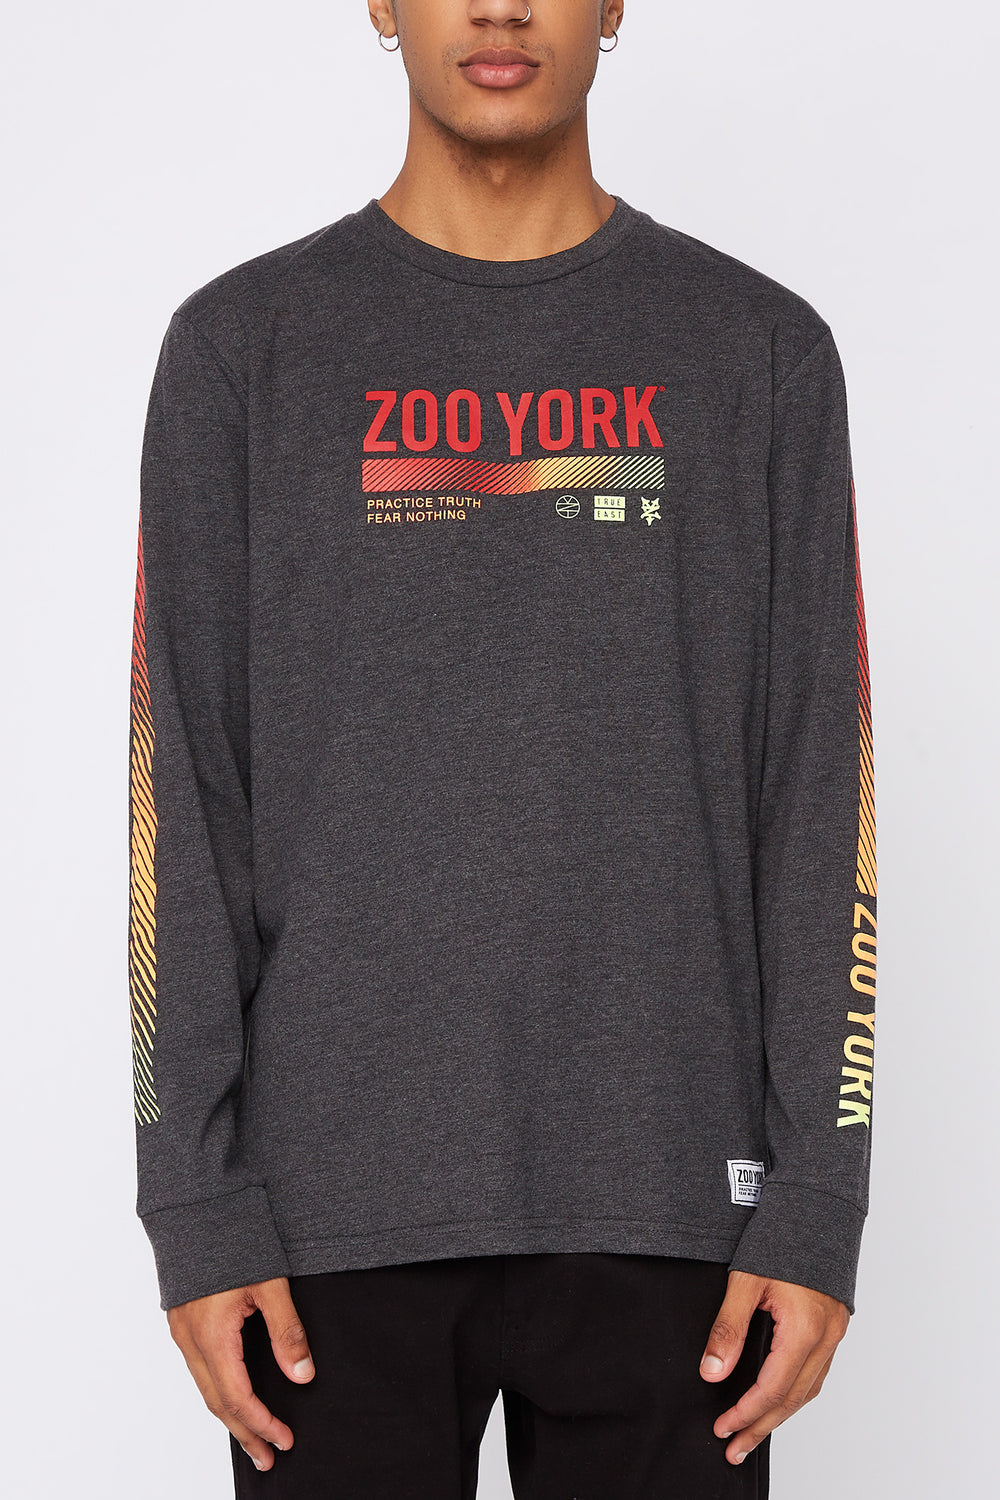 Zoo York Mens Practice Truth Long Sleeve Shirt Charcoal